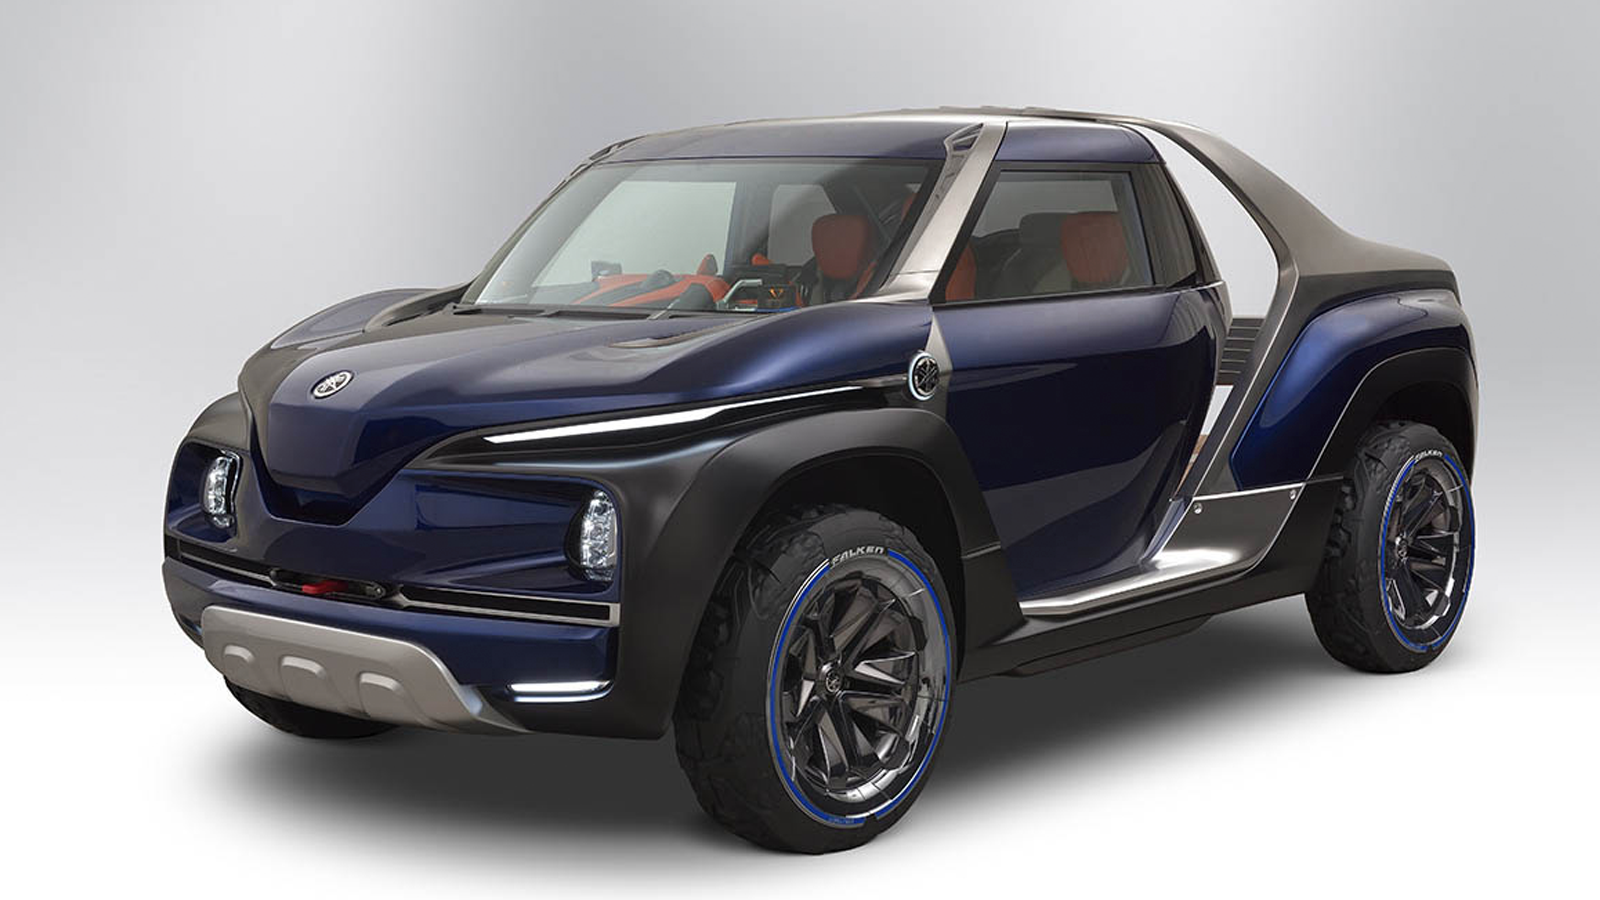 Yamaha s cross hub little truck concept is a wonderful vehicle i know deep down we ll never get